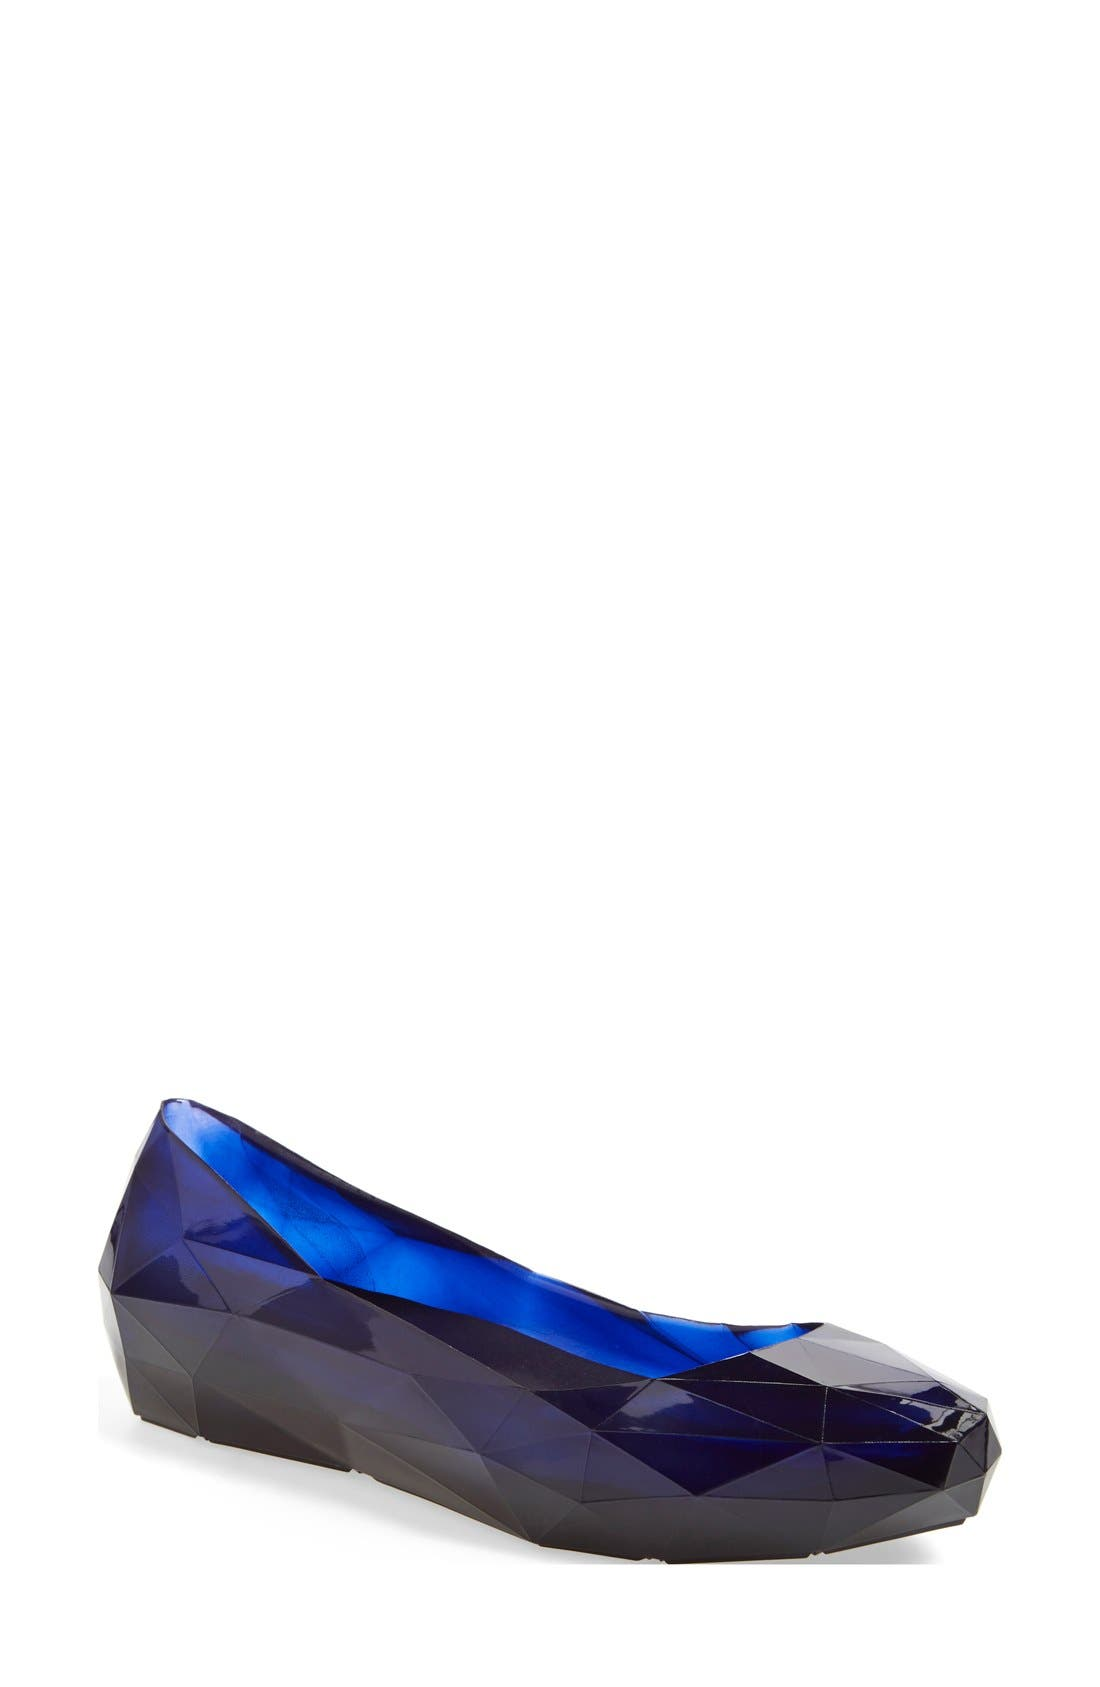 Alternate Image 1 Selected - United Nude Collection 'Lo Res' Skimmer Flat (Women)